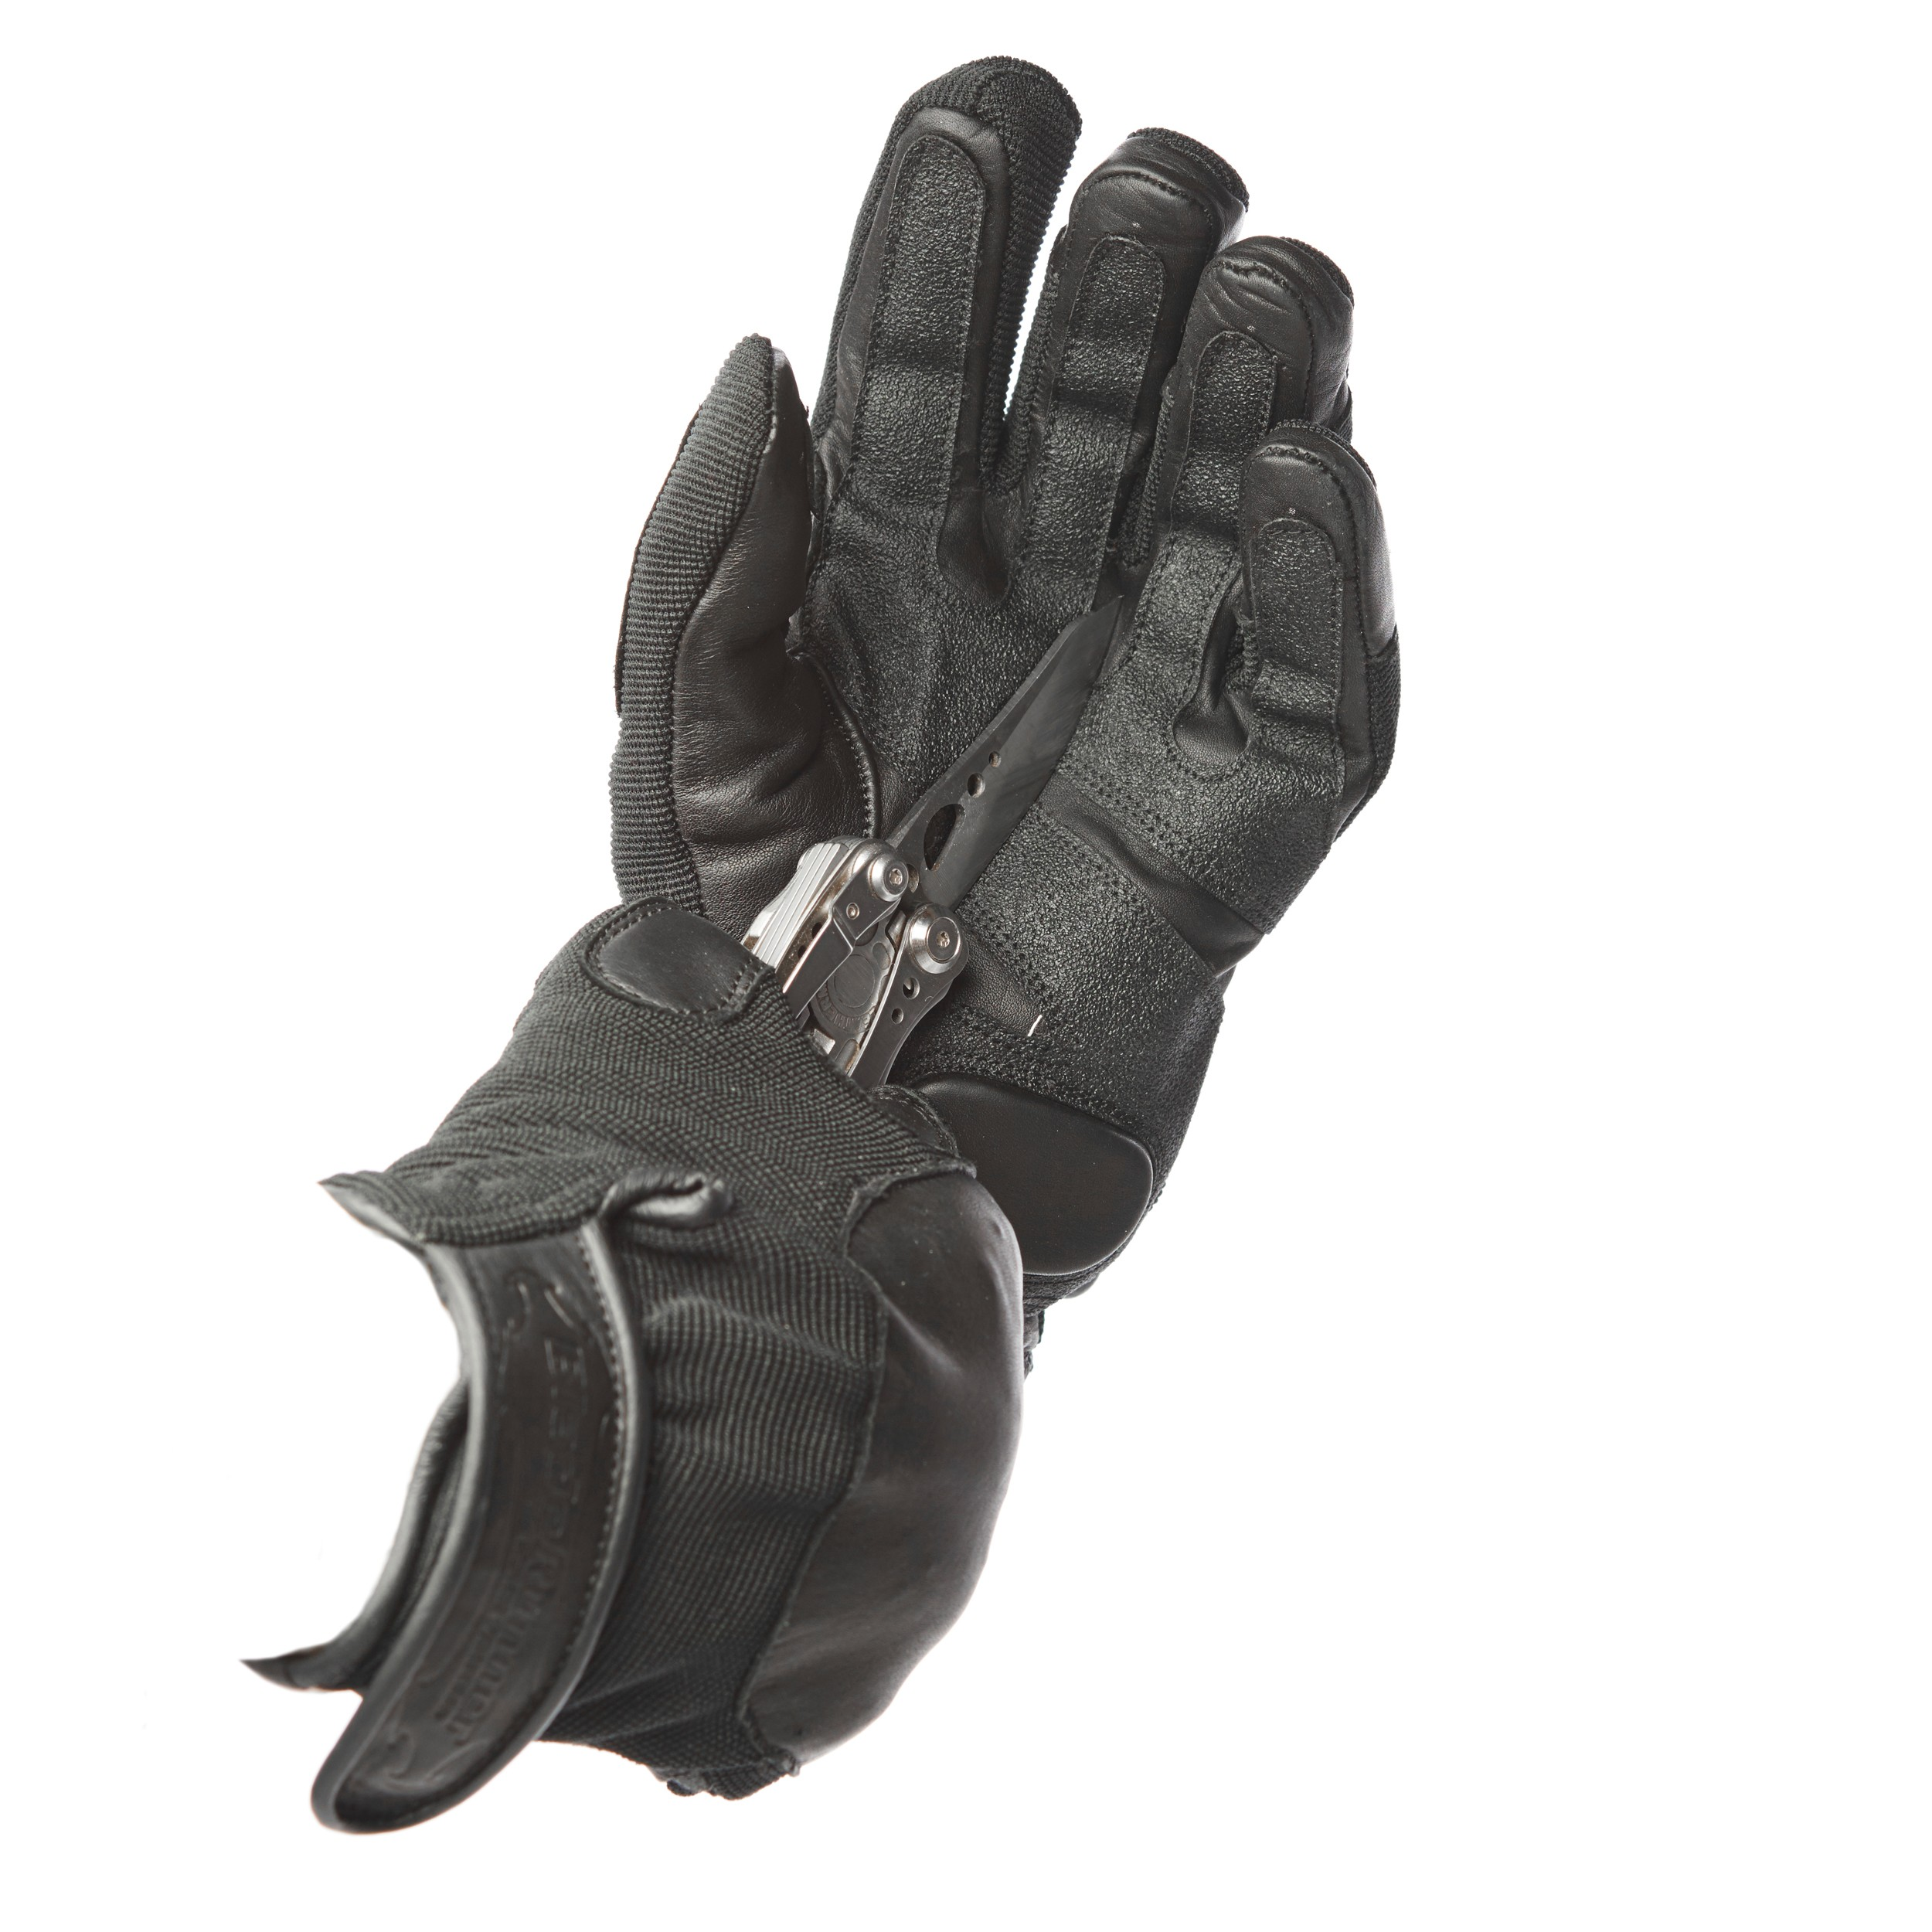 Bladerunner New Style Leather/Neoprene Gloves WITHOUT ...